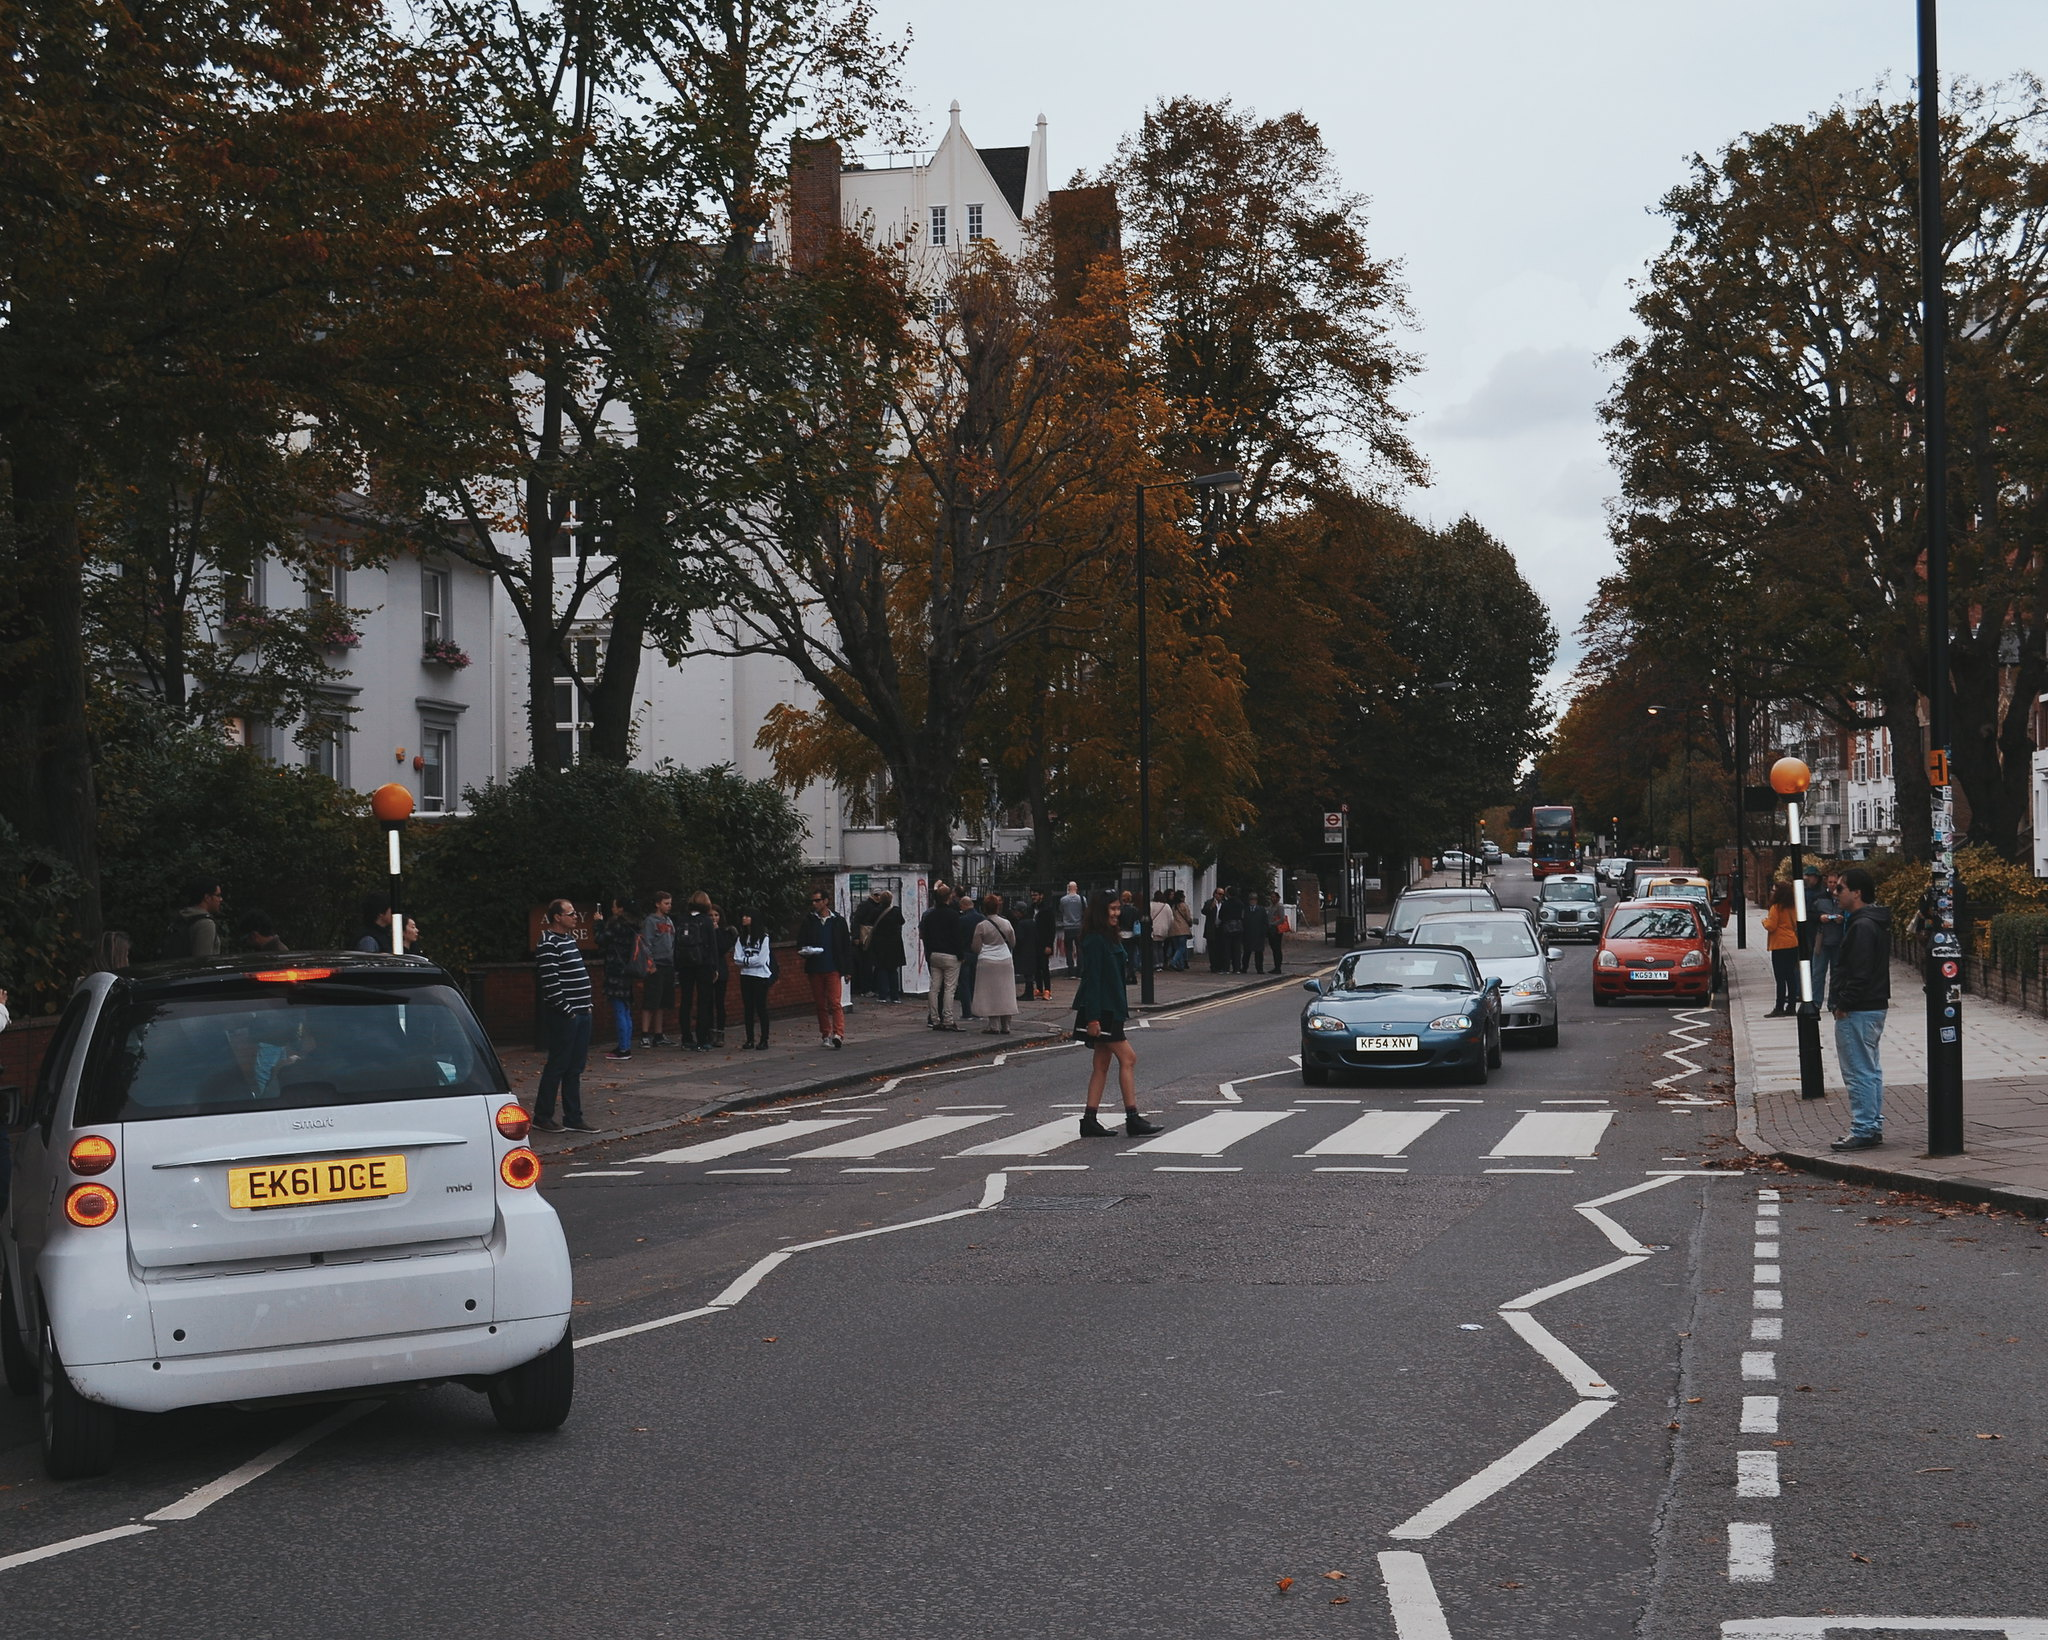 Bucket List Cross the Intersection of Abbey Road